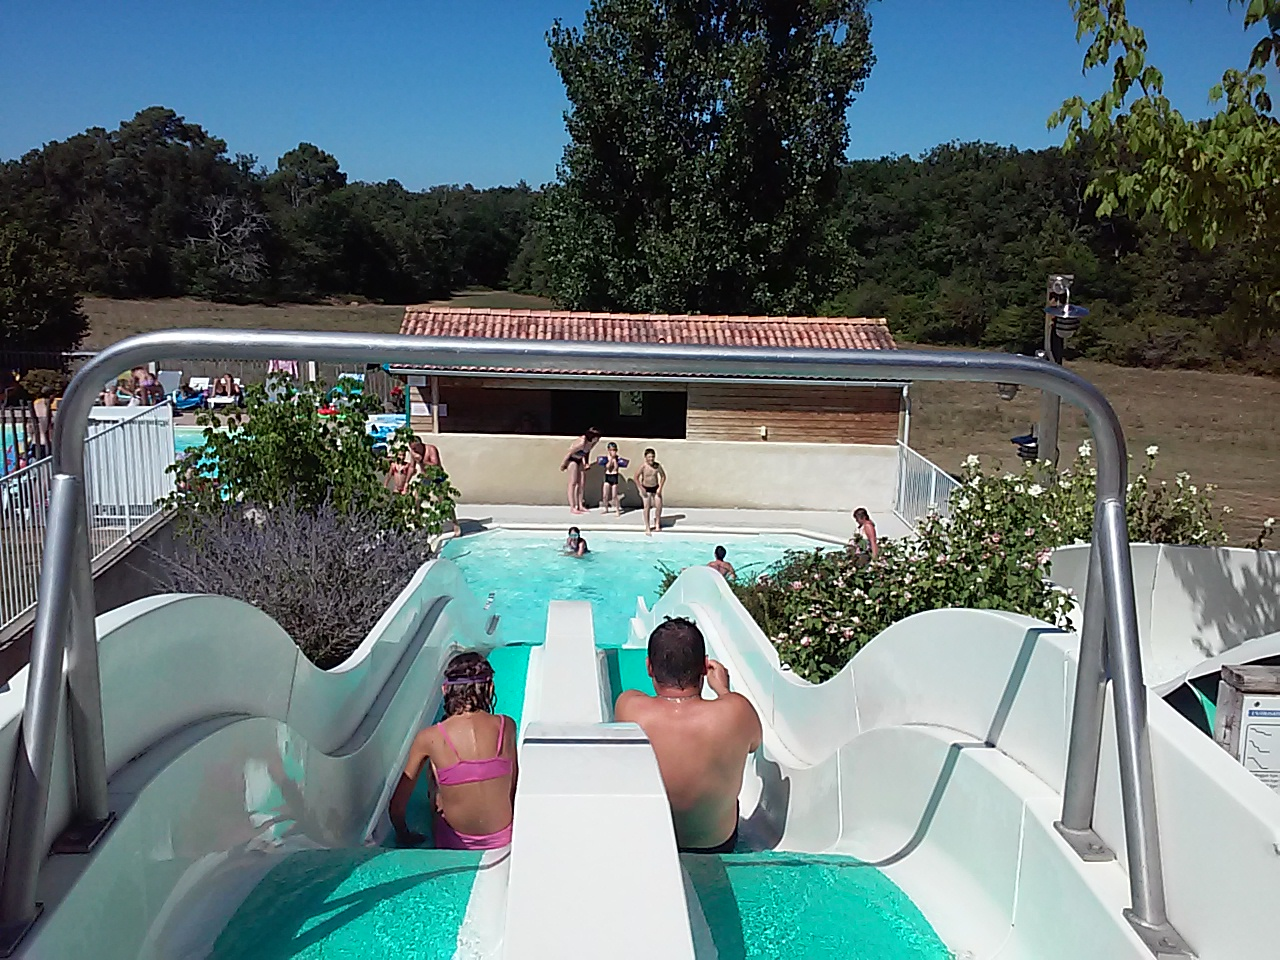 Vacances camping dordogne pas cher cheque vacances camping italie